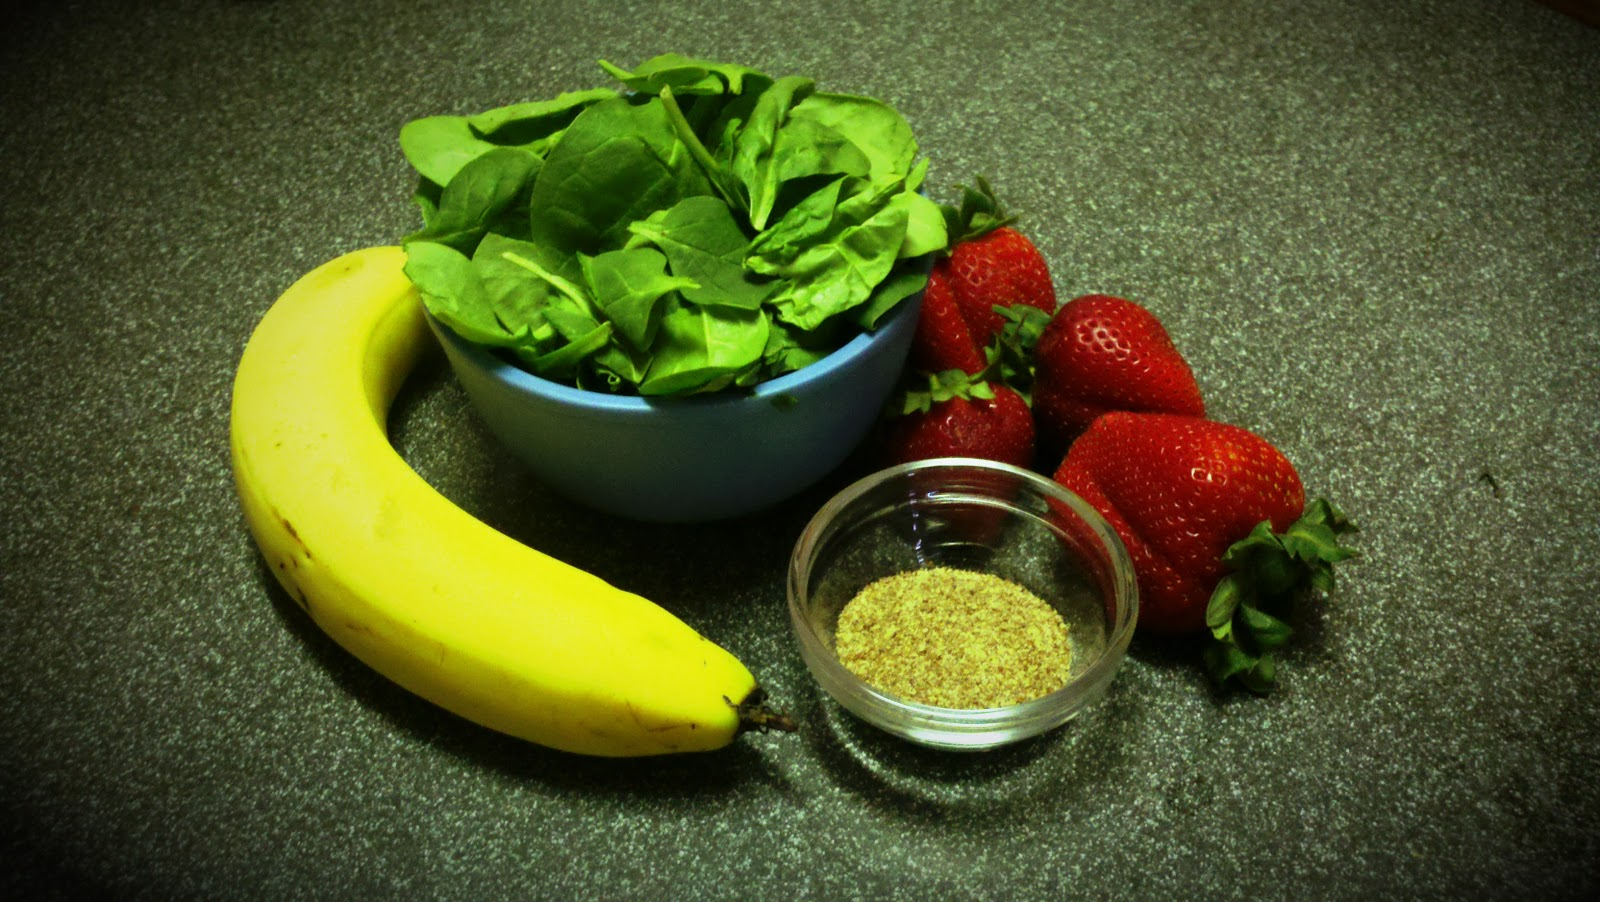 fruit ninja apk healthy smoothies with spinach and fruit